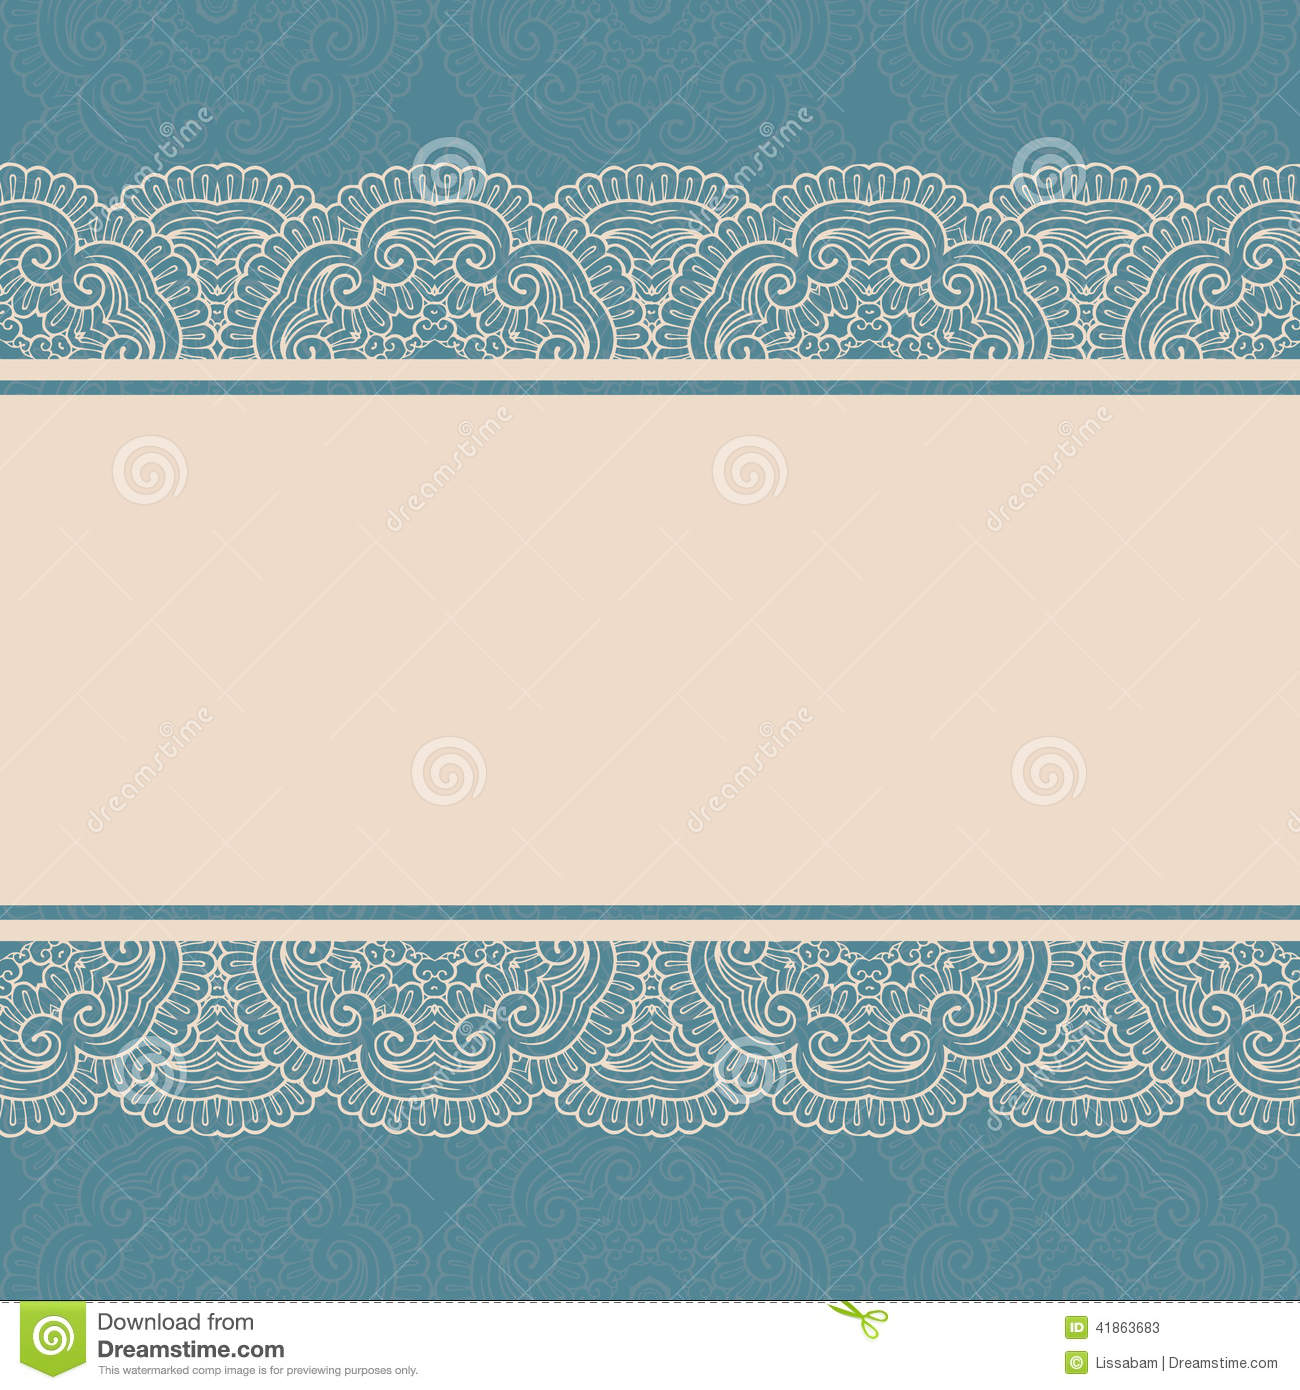 Vintage Lace Border, Seamless Background Stock Vector ...